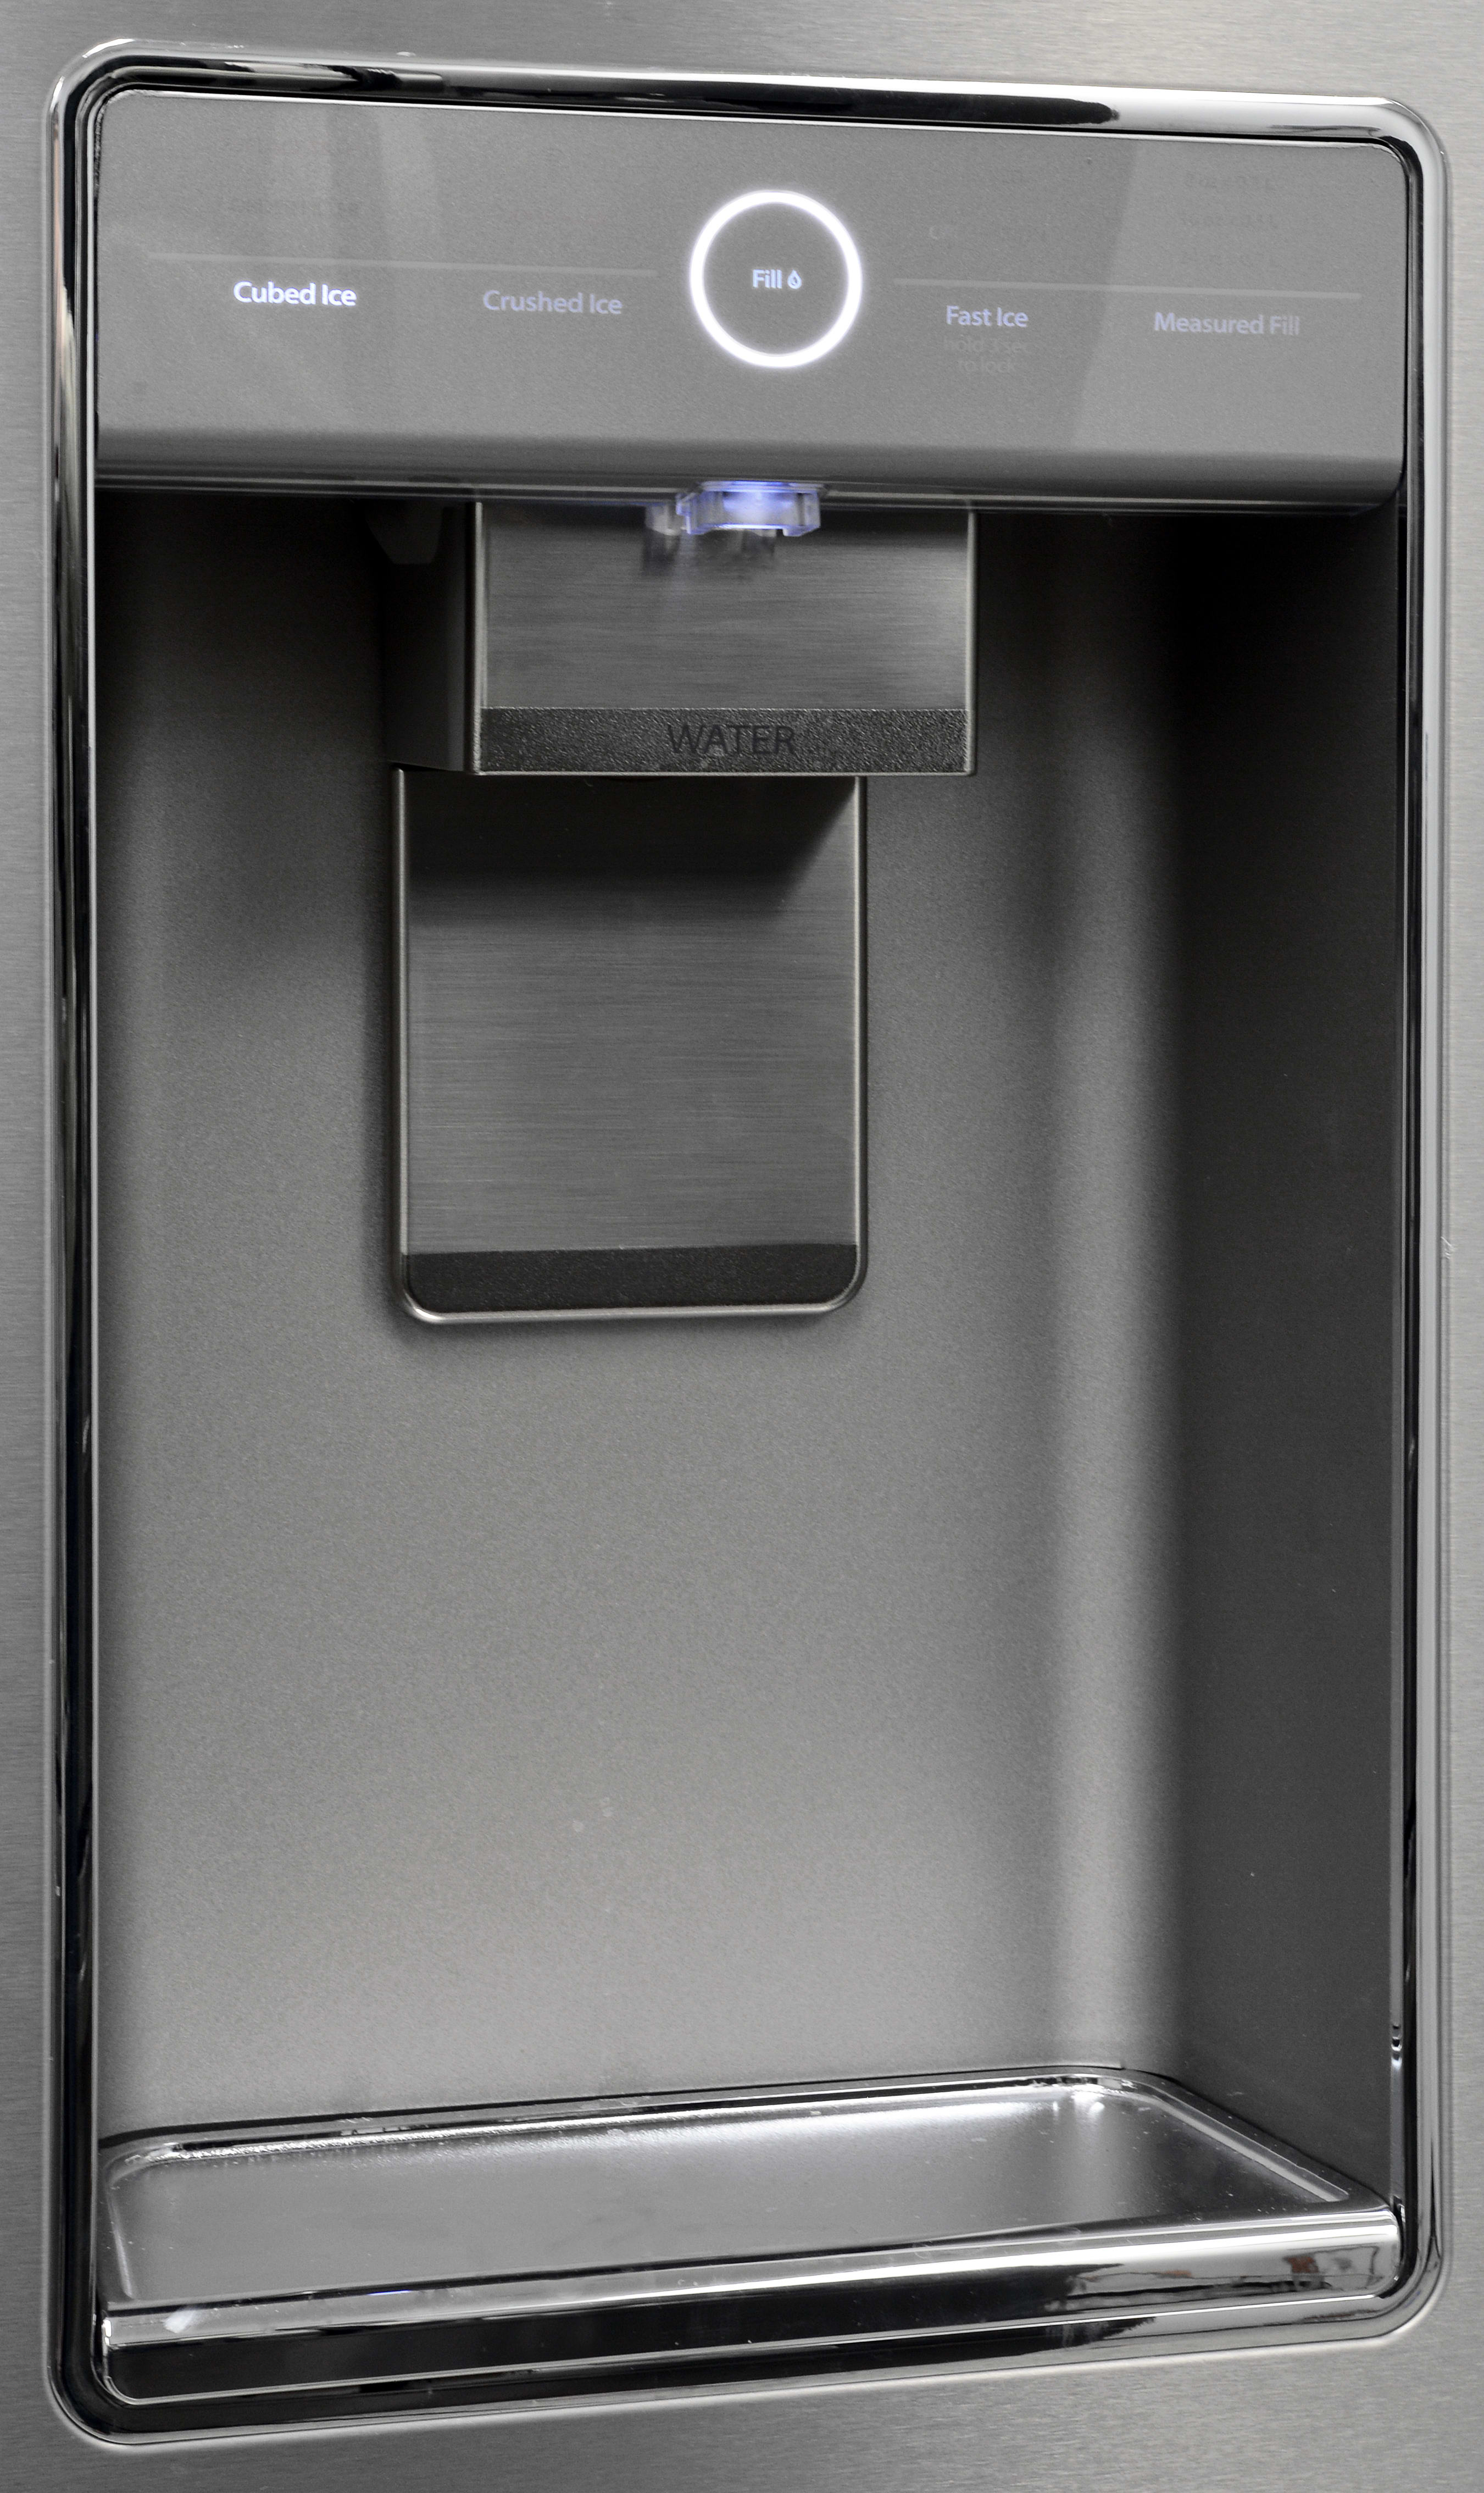 The minimalist dispenser and the applicable controls are the only thing breaking up the stainless exterior.